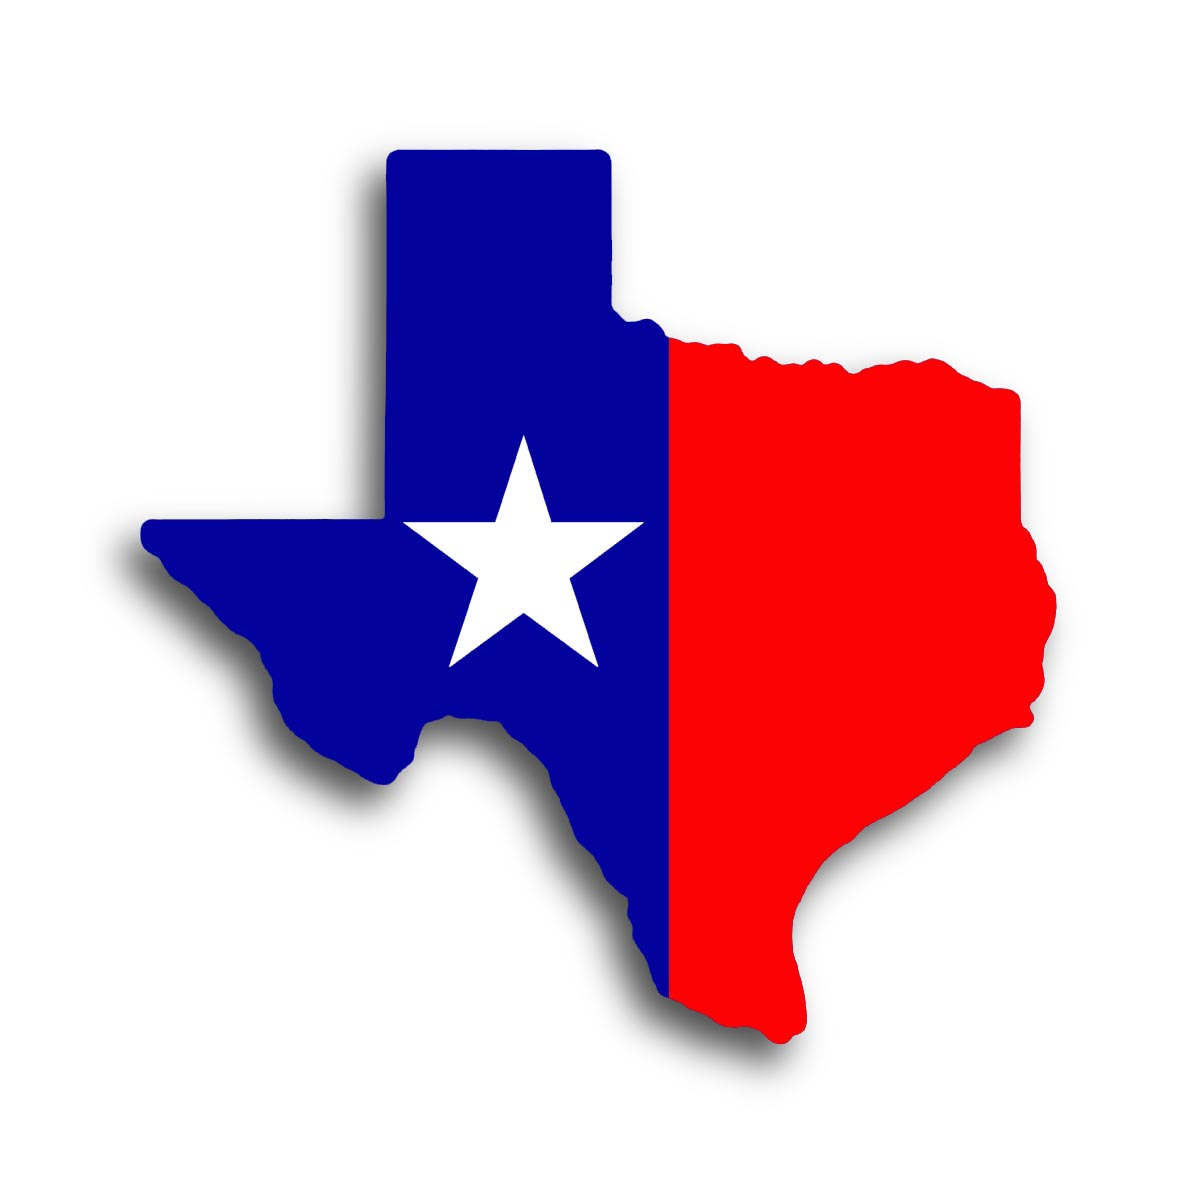 Texas logo clipart svg free library Free Texas Cliparts, Download Free Clip Art, Free Clip Art ... svg free library